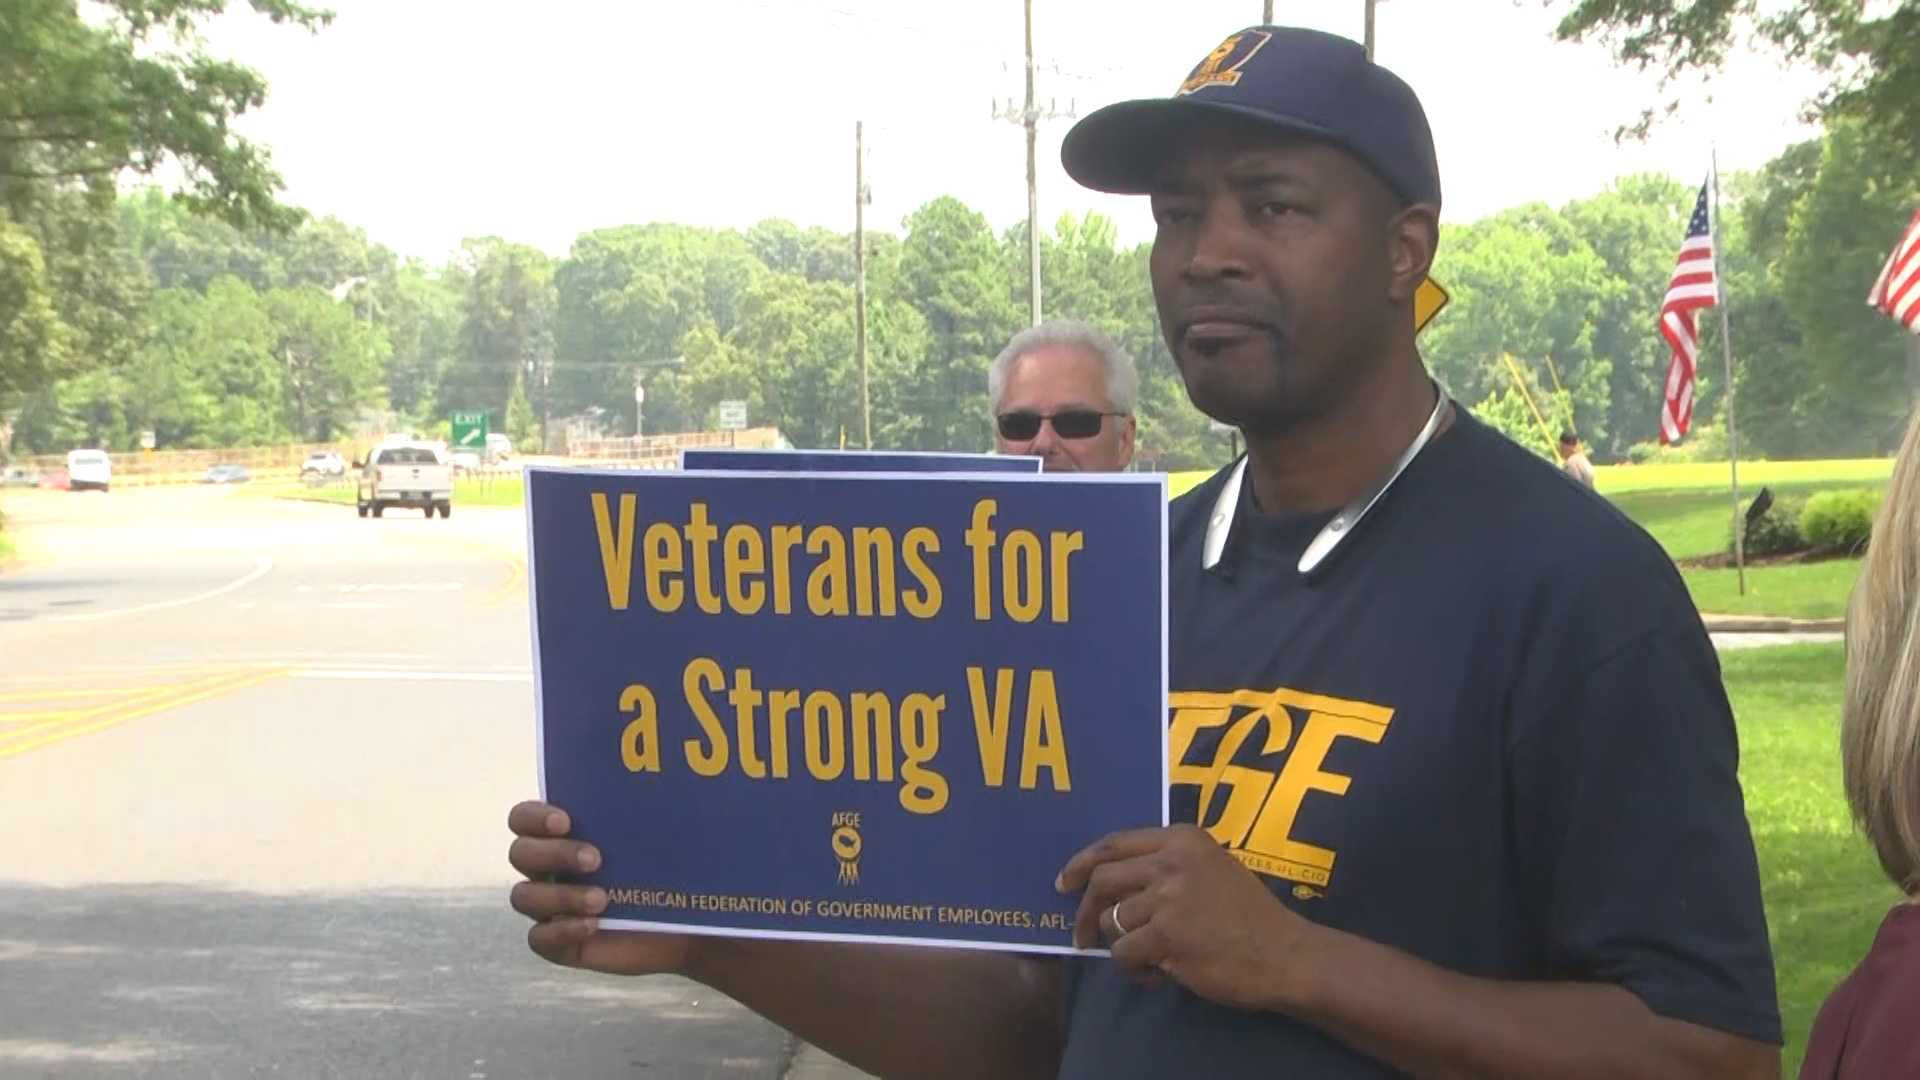 Veterans are pleading for action to help VA hospitals across Alabama and the country from closing due to a shortage of government funding.